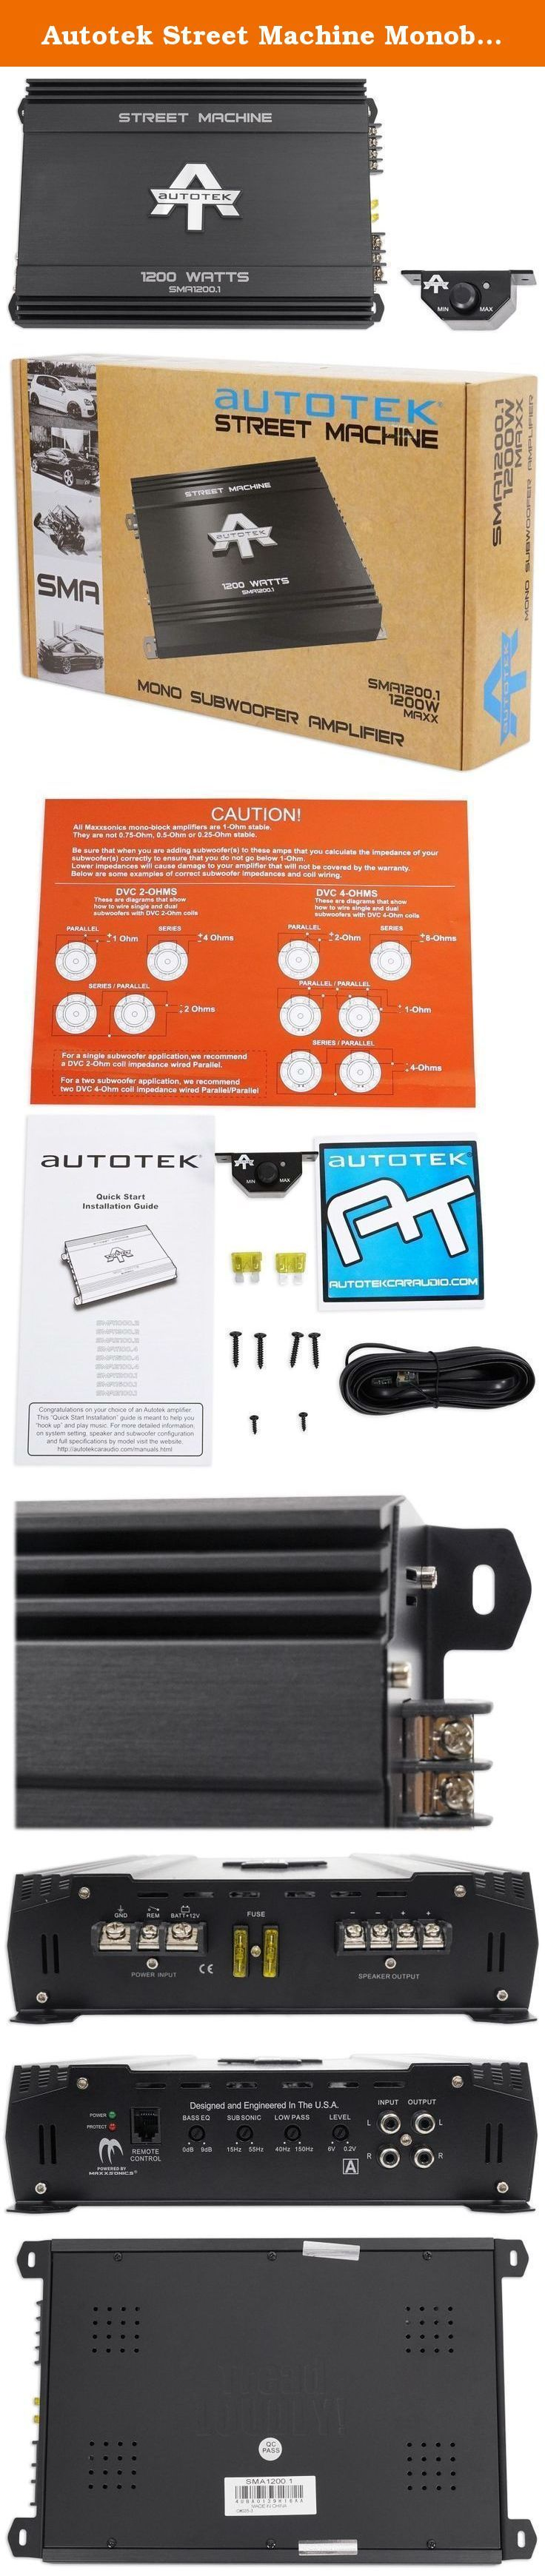 Autotek Street Machine Monoblock Class AB Amp (1,200 Watts) SMA1200.1. Includes remote. Signal to noise ratio > 95 dB. Total harmonic distortion < 0.5 %. Variable input voltage. Low to noise preamp. Low to level RCA inputs and outputs. Mono mode is intended for subwoofers only. Built to in variable electronic crossover (HP and LP). Onboard bass boost. Easily ties into OEM audio systems. 1,200 watt max. 600 watt RMS x 1 @ 4ohm. 1,200 watt RMS x 1 @ 2ohm. Warranty: One year. 13.6 in. W x…